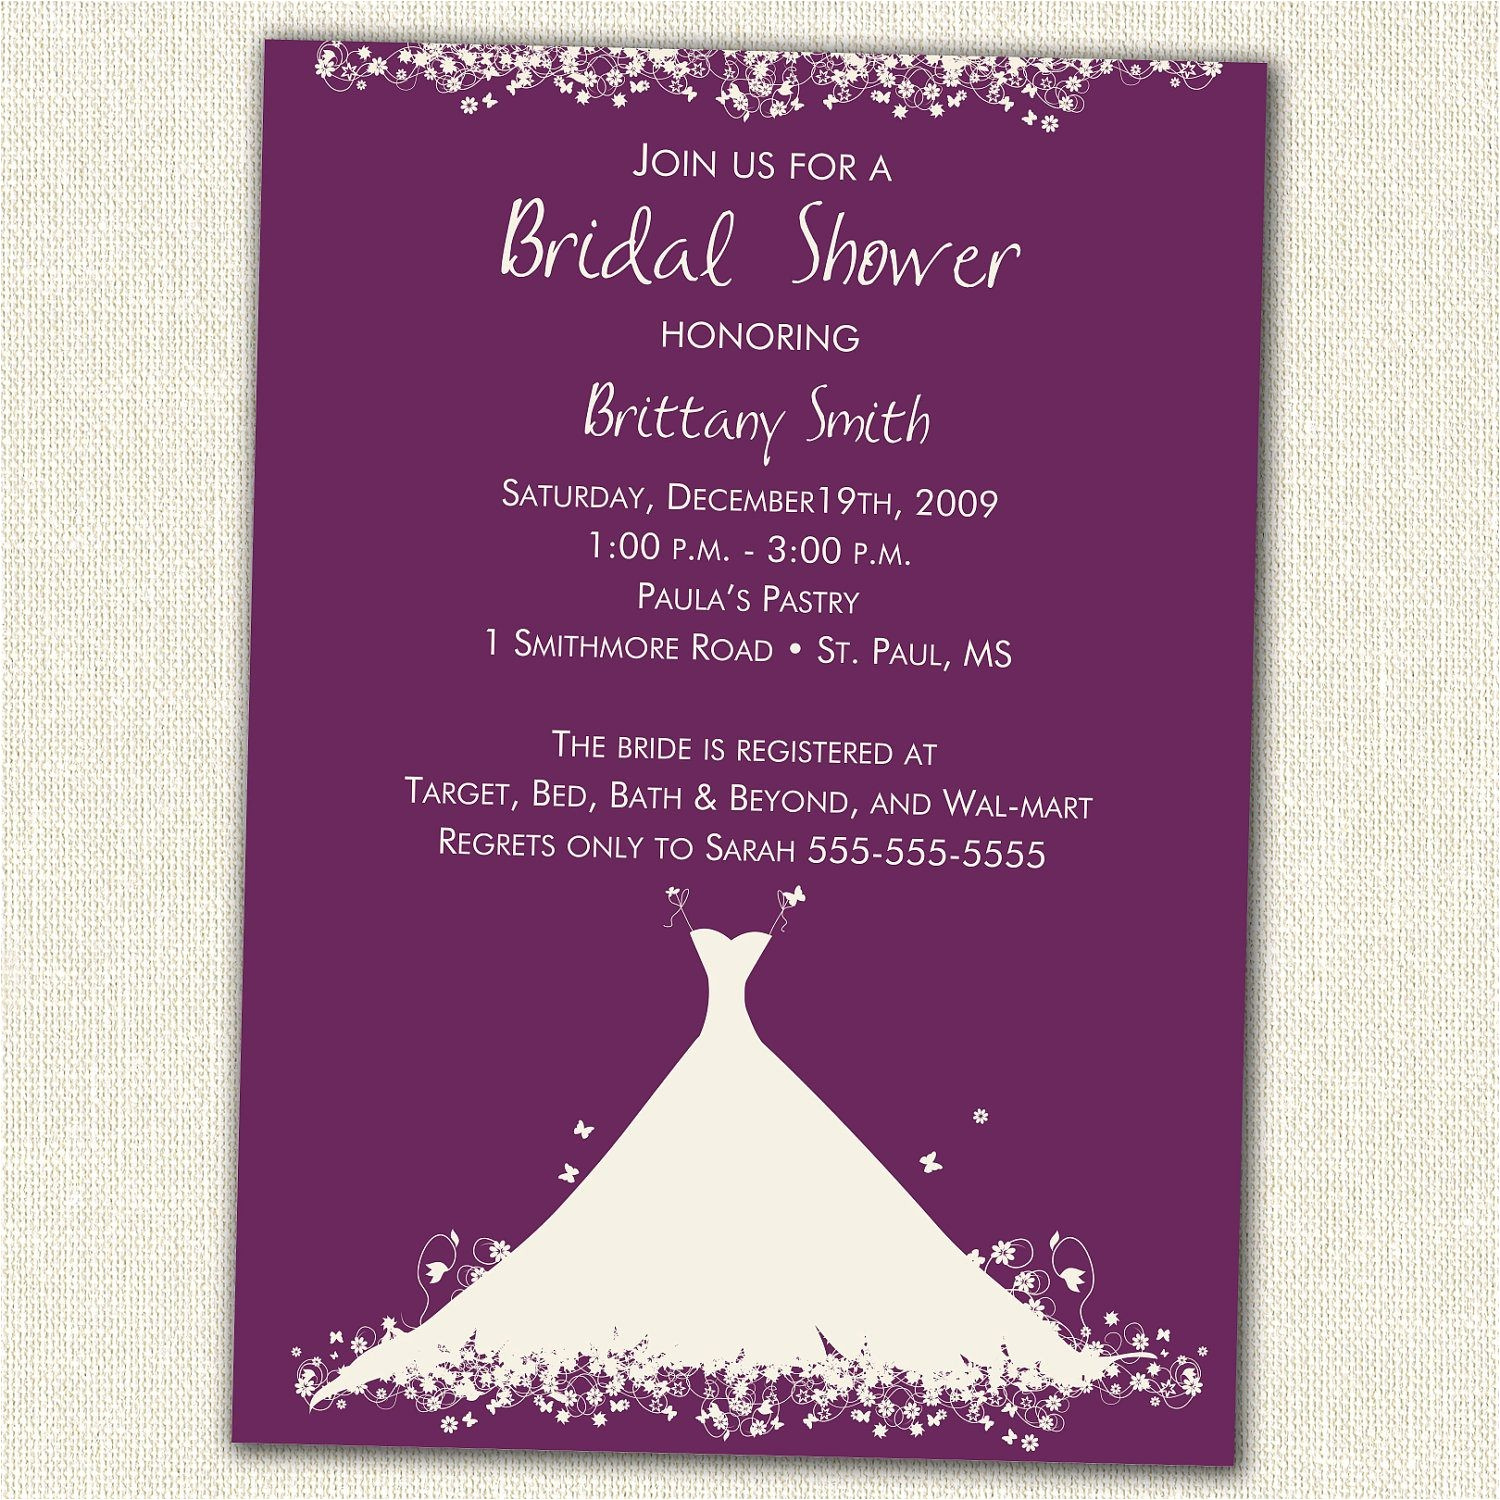 Vistaprint Canada Bridal Shower Invitations Vista Print Wedding Shower Invitations Arts Arts